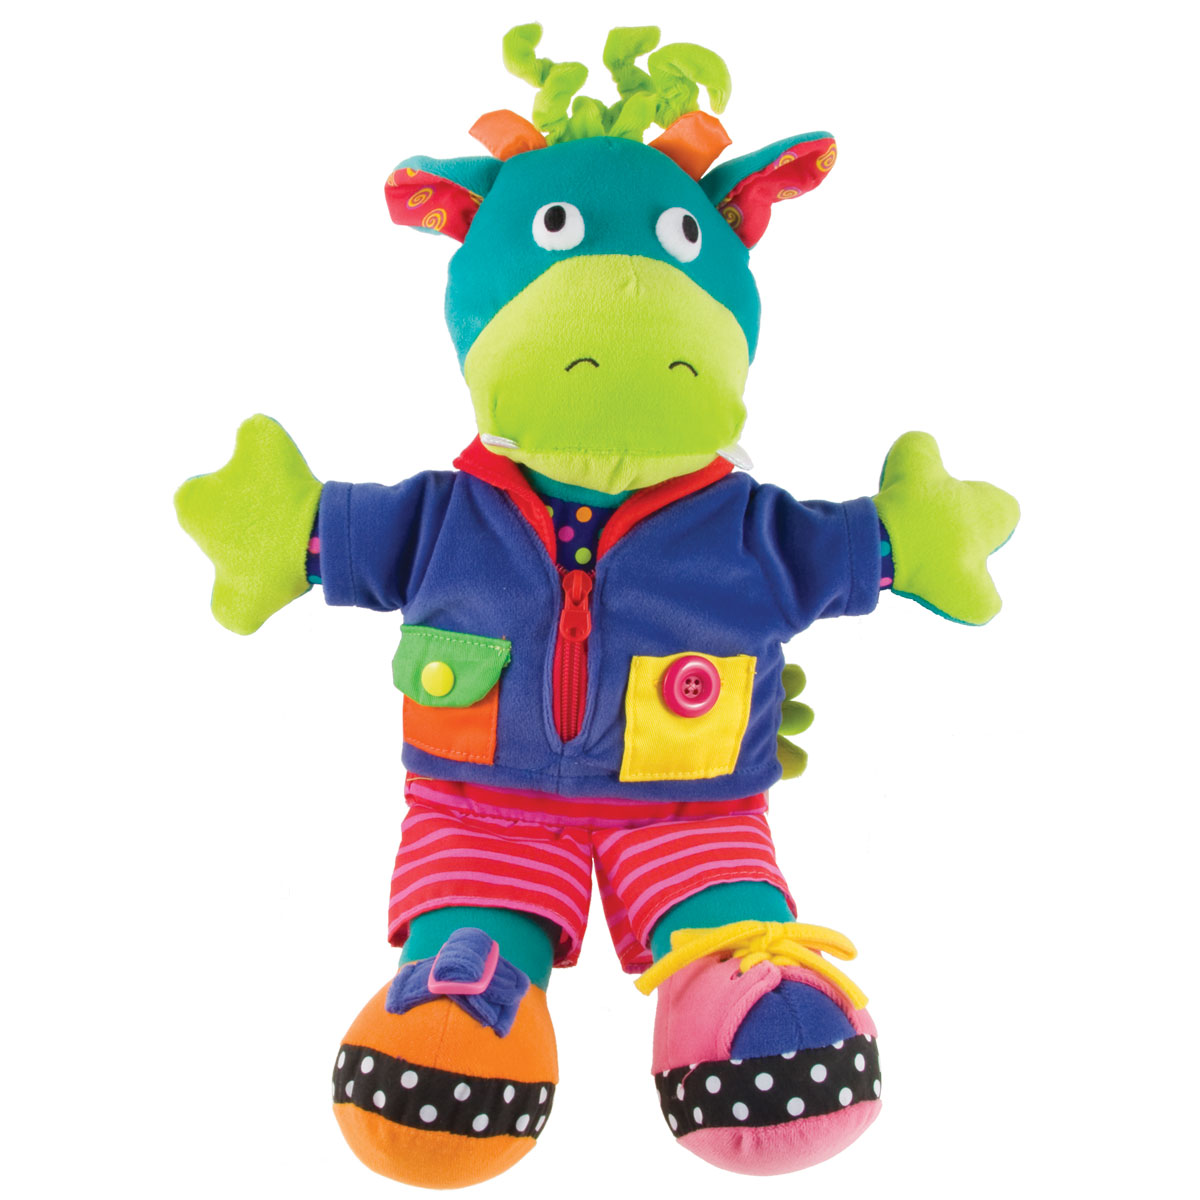 Soft Baby Toys : Dragon fastening soft toy toys for babies mulberry bush